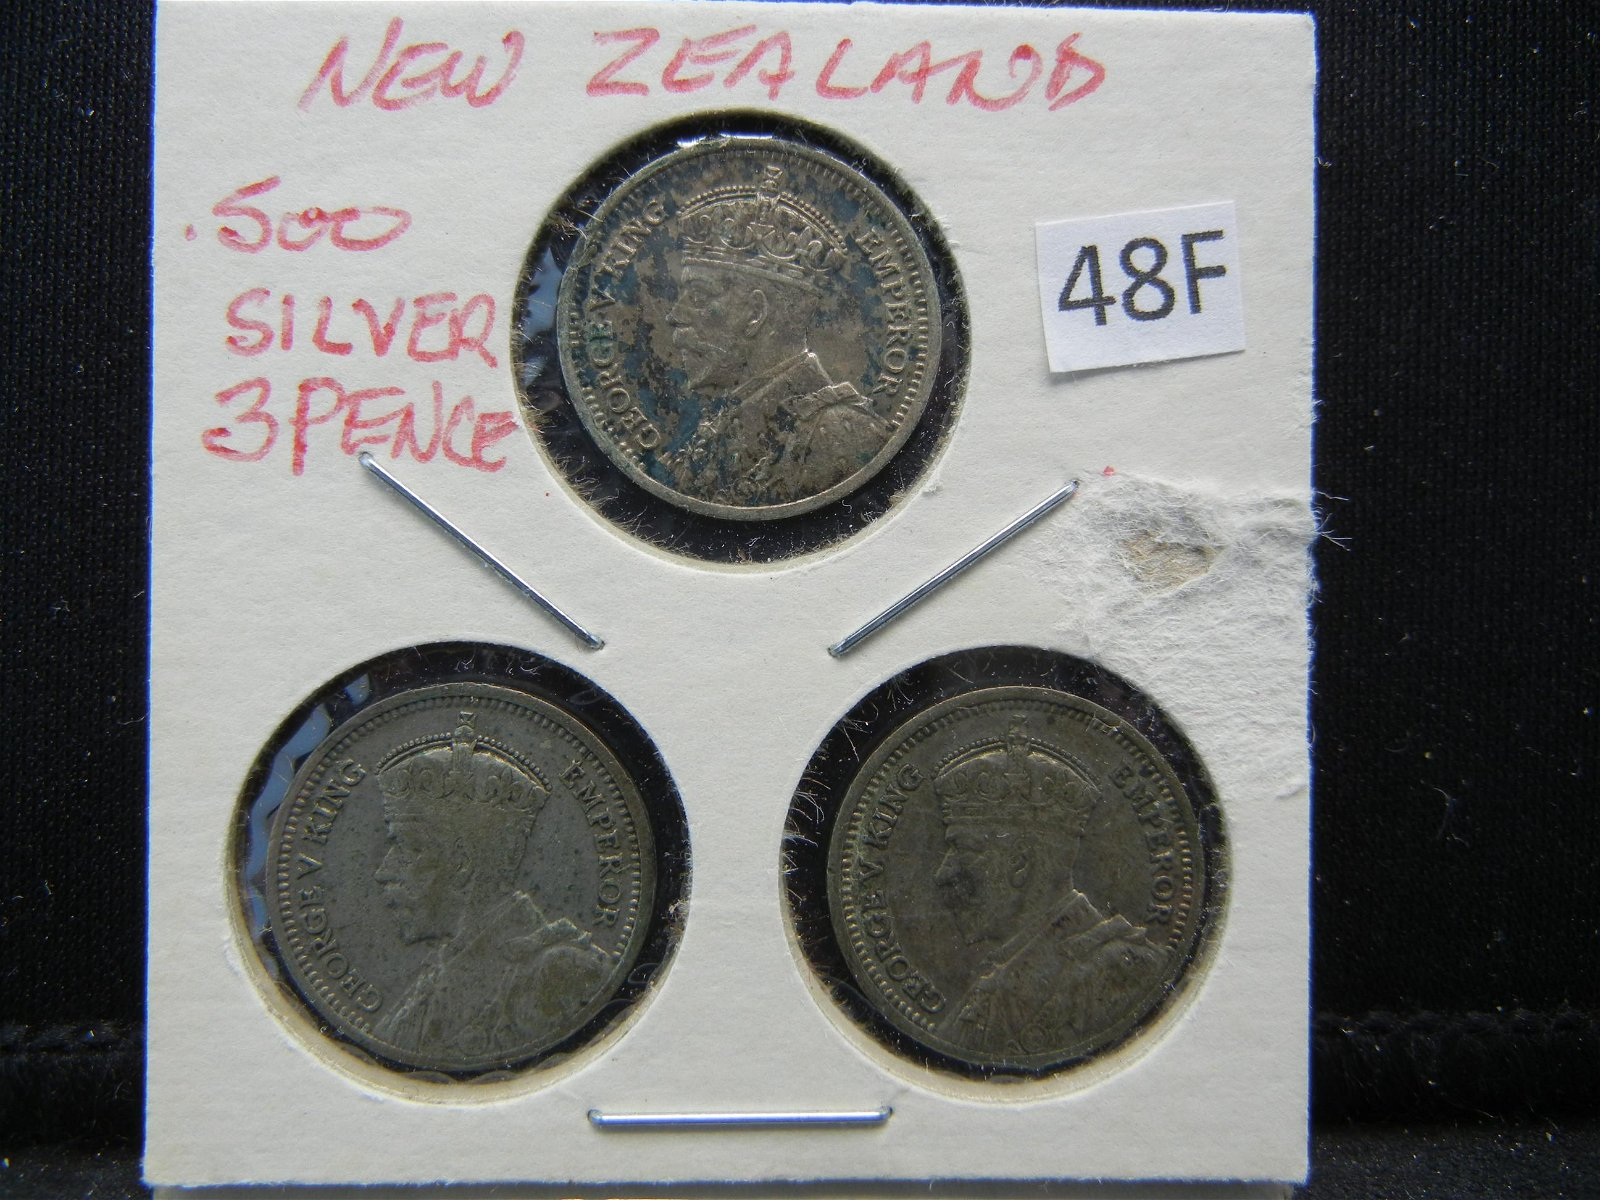 1934 and 1936 New Zealand .500 Silver 3 Pence.